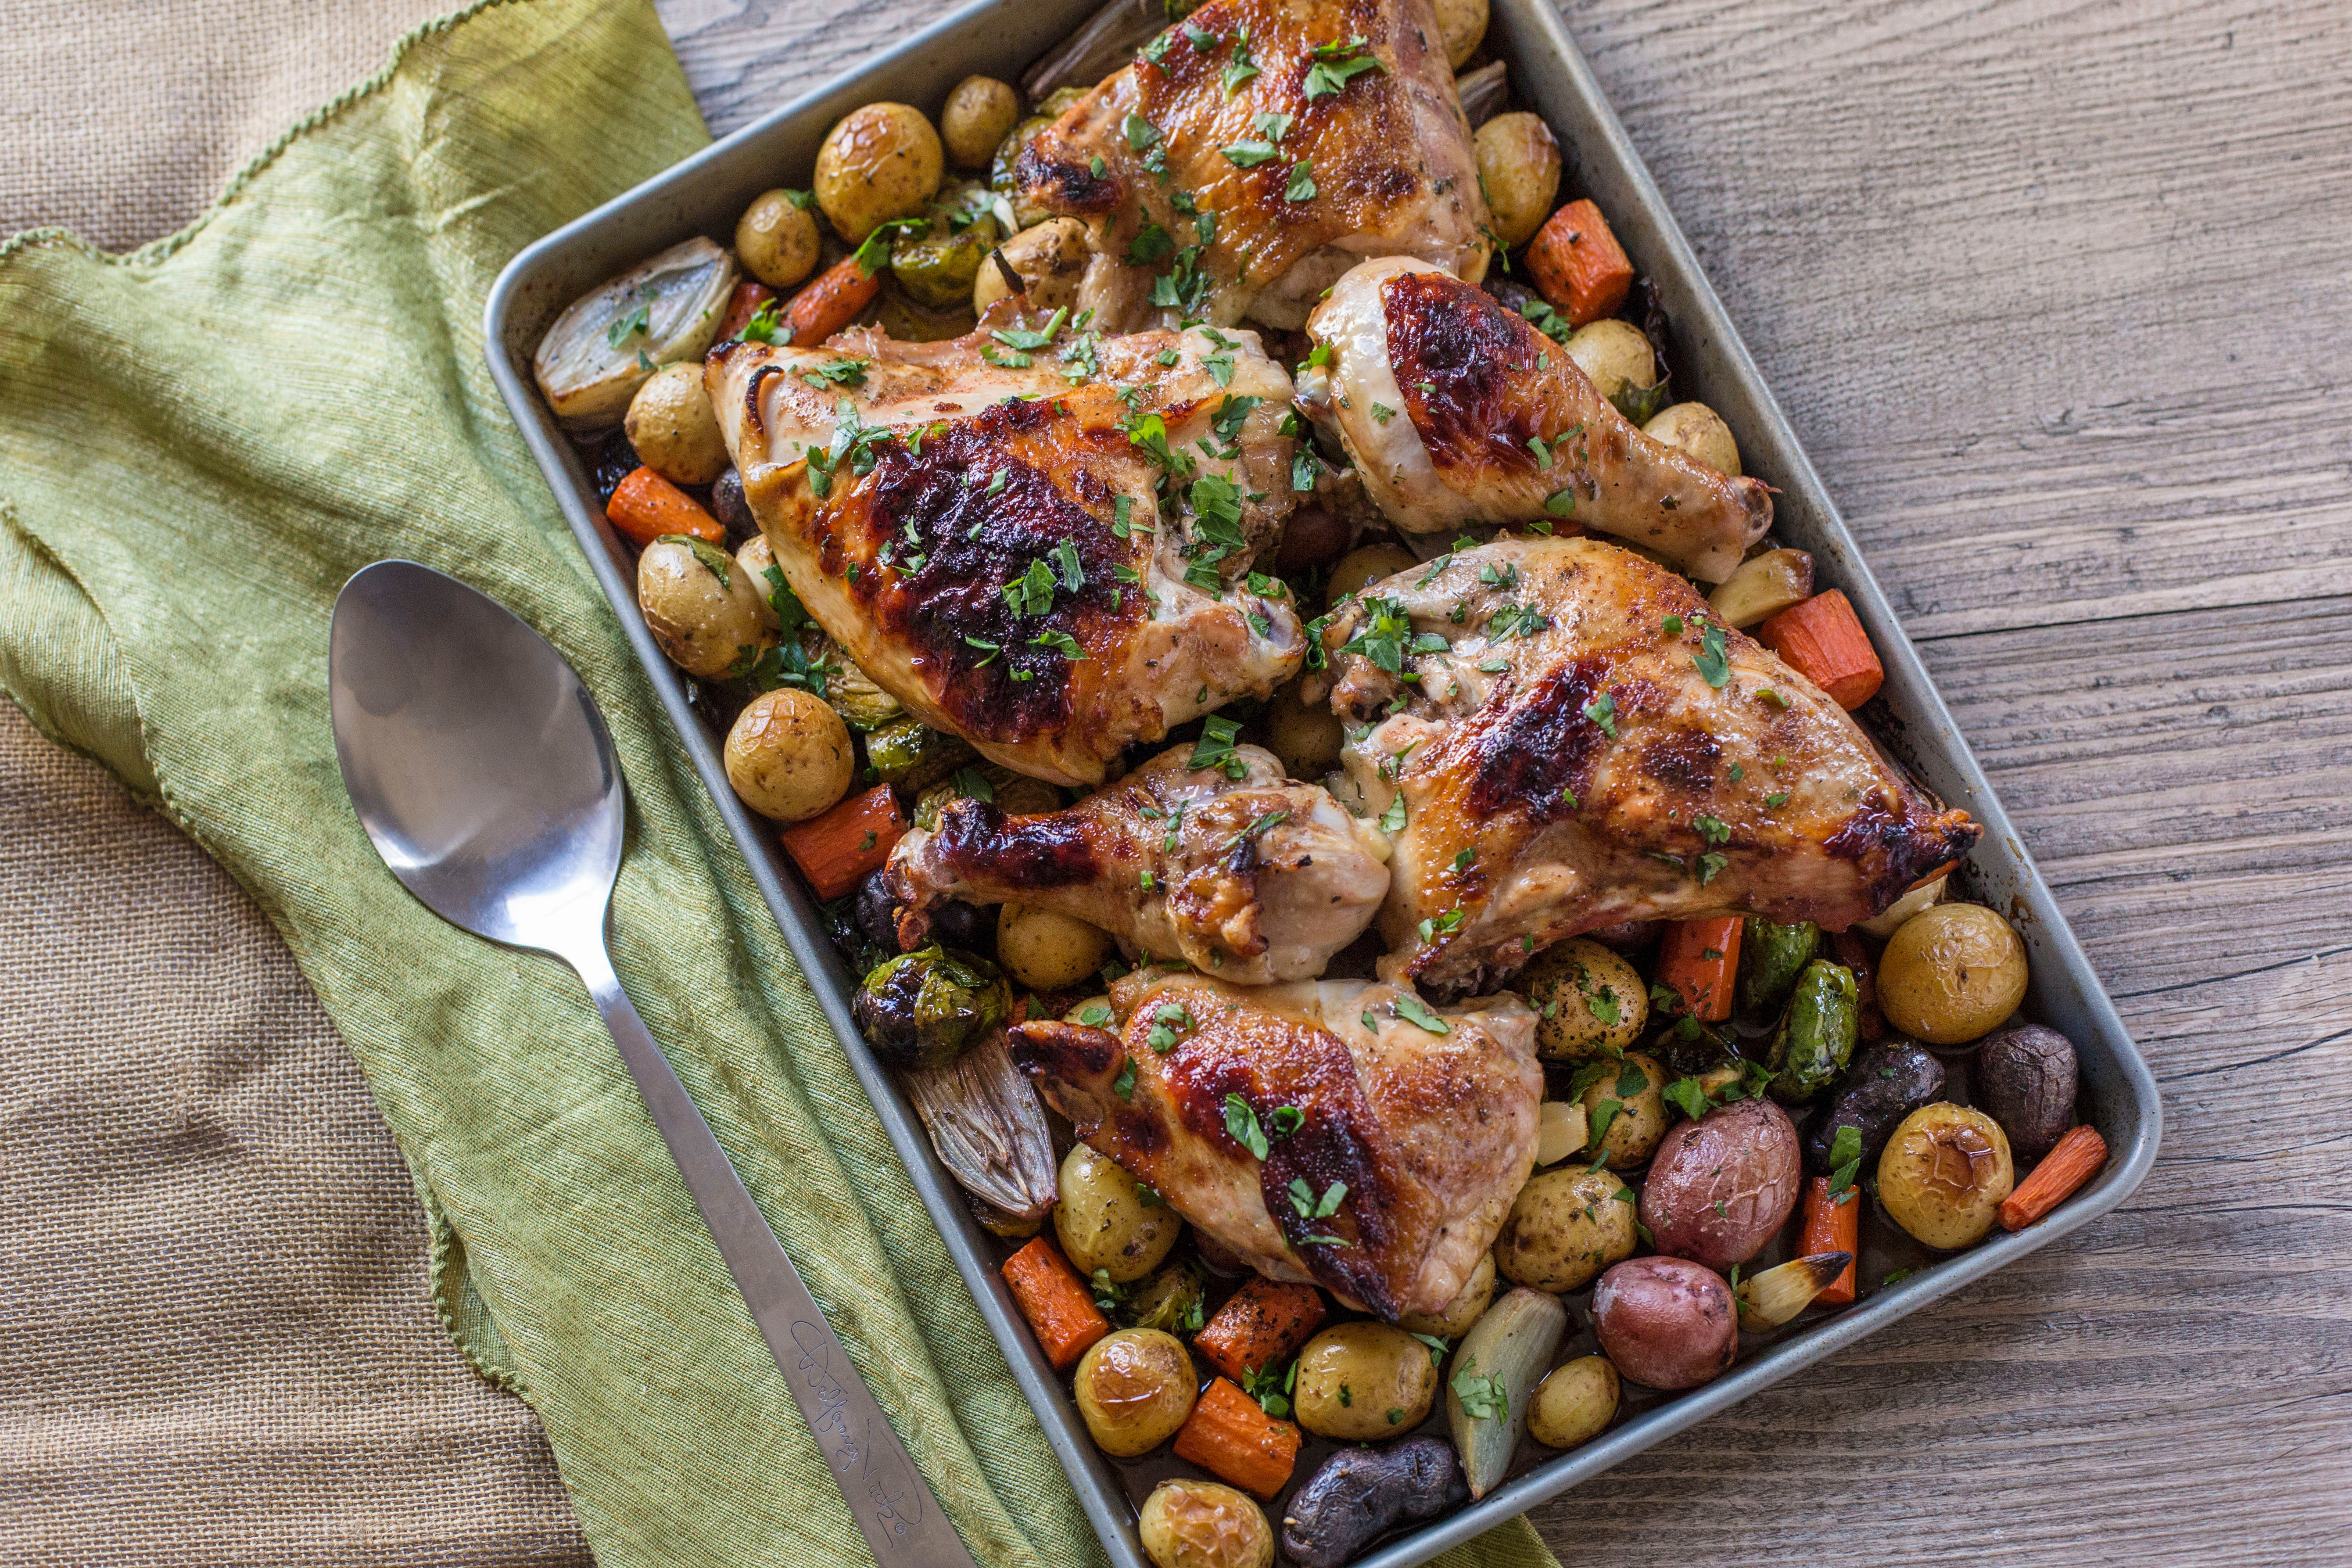 Sheet Pan Roasted Chicken & Vegetables